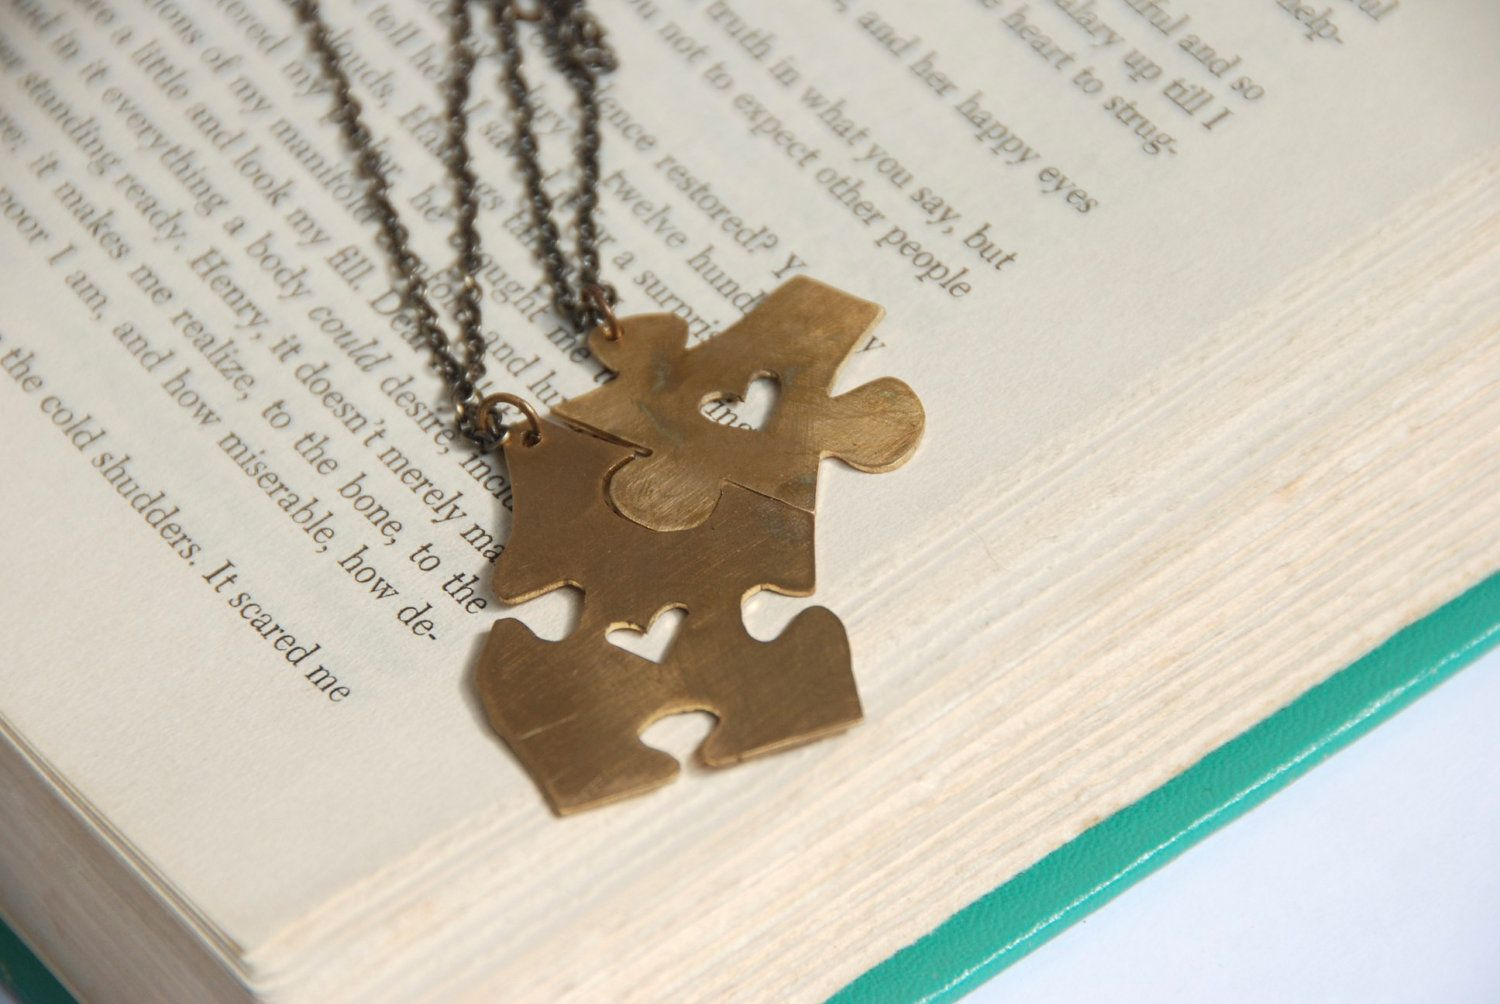 96c07fd72e Puzzle Piece Necklace... I love the idea of puzzle pieces, different shapes  and sizes but the right ones always fit together.